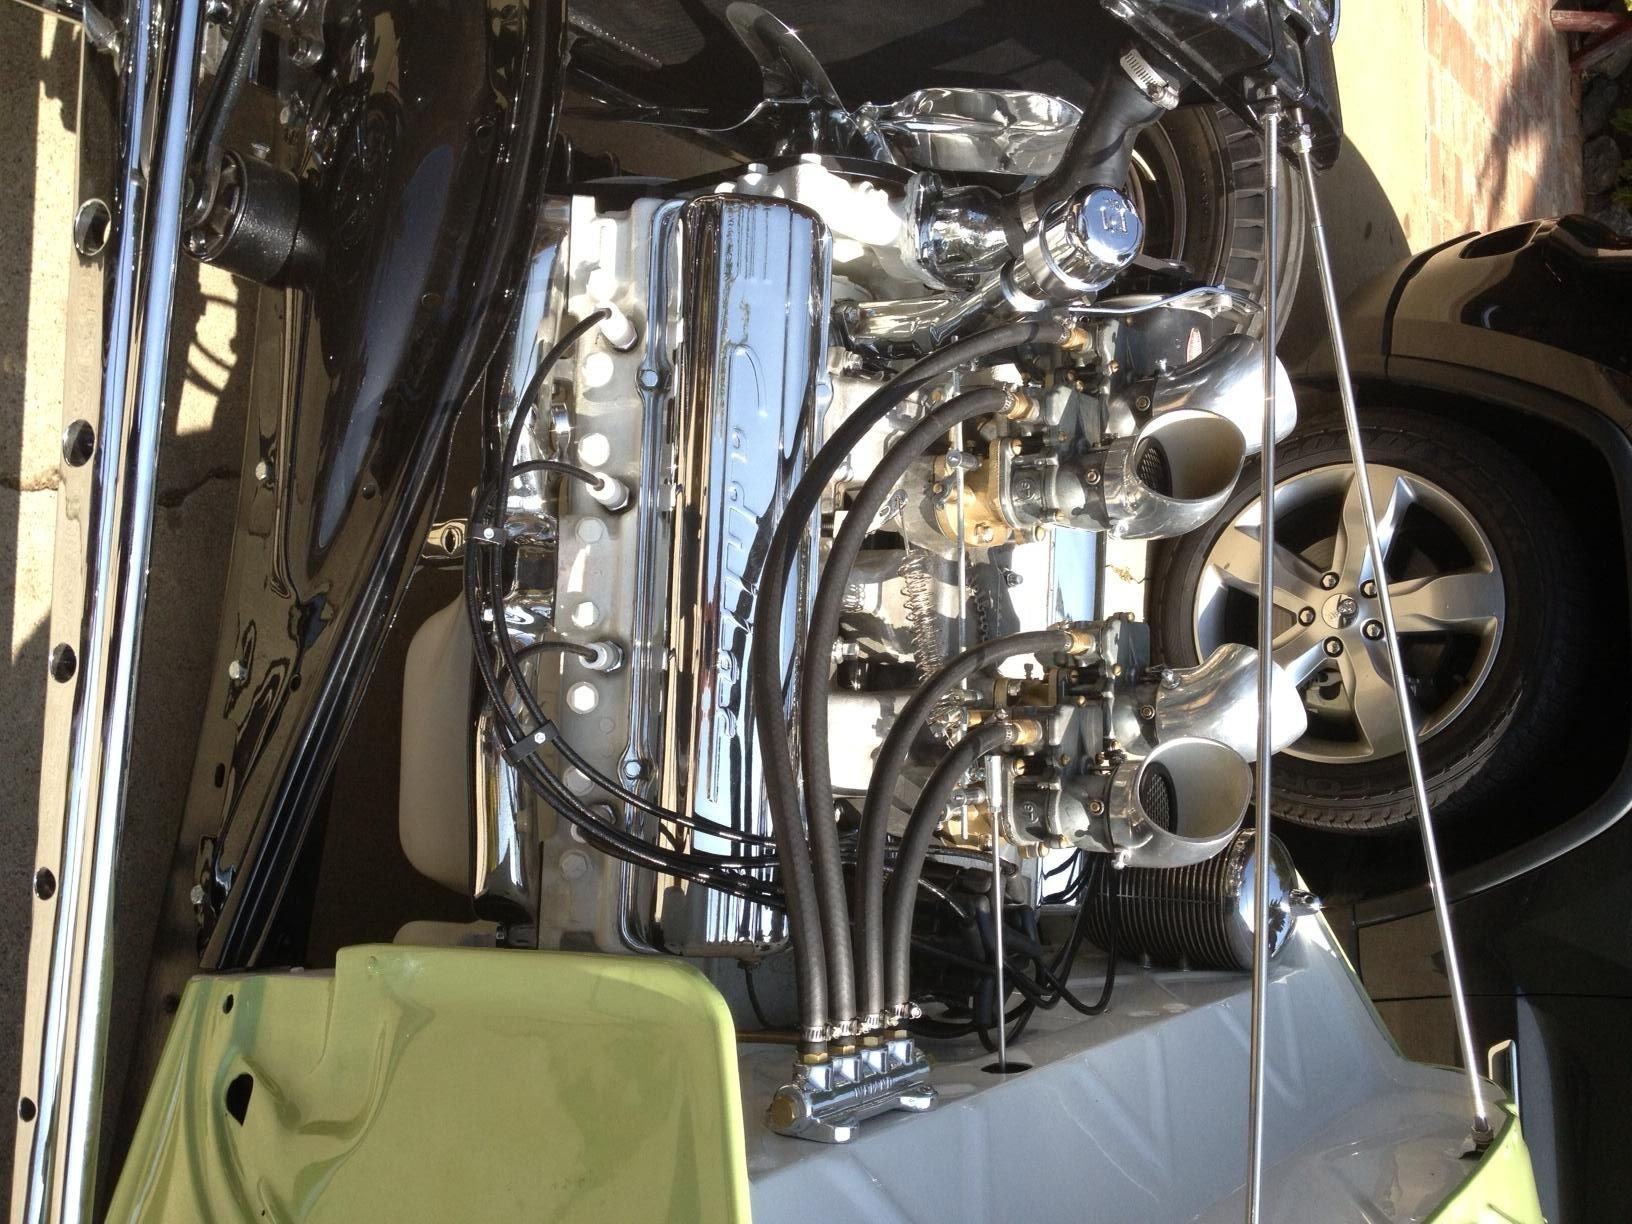 medium resolution of a good engine photo of joe clary s 1934 ford 3w coupe 331 cadillac with a four pack